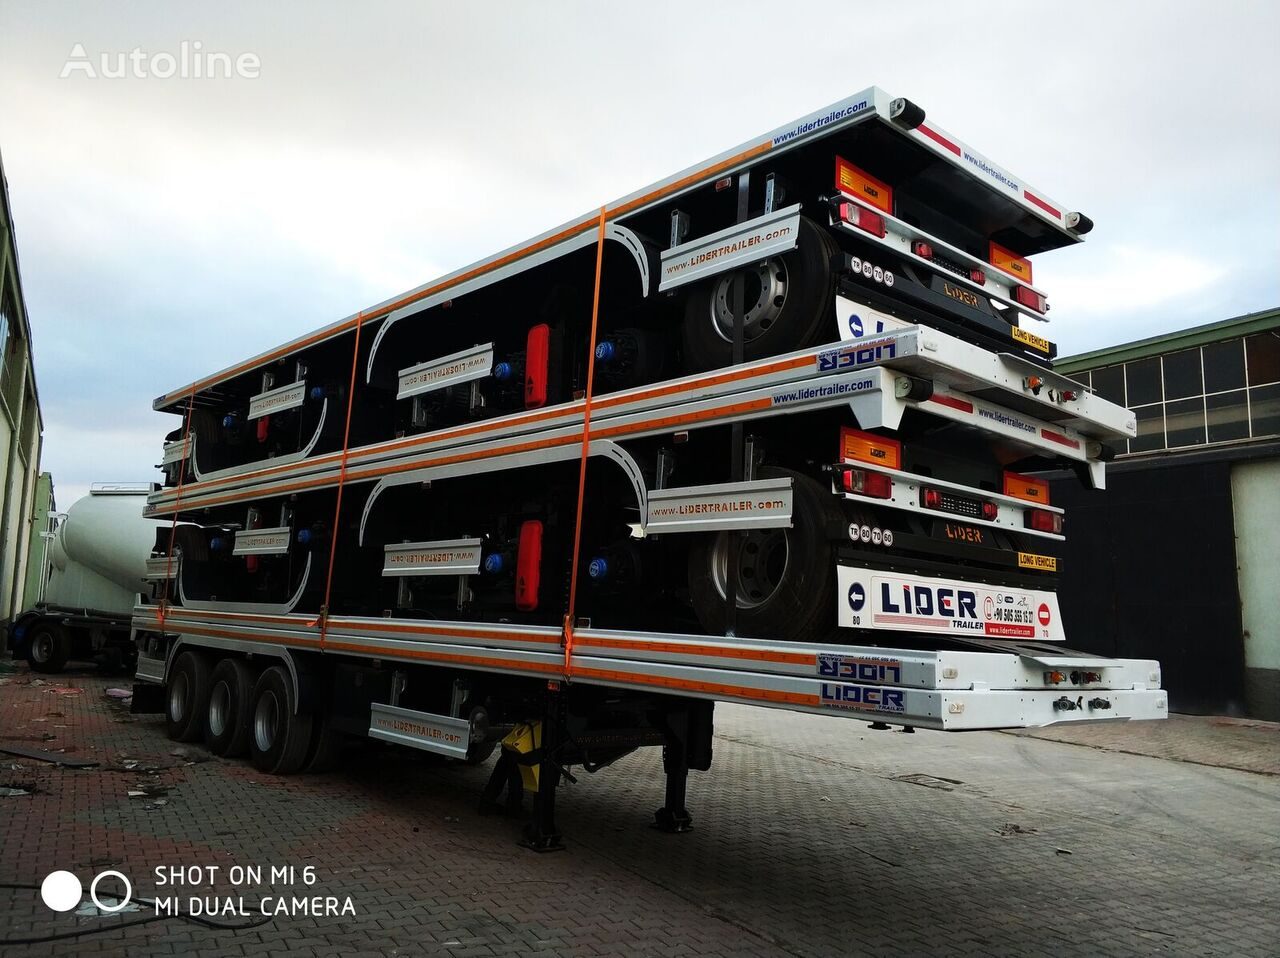 new LIDER NEW 2020 MODELS YEAR (MANUFACTURER COMPANY LIDER TRAILER container chassis semi-trailer